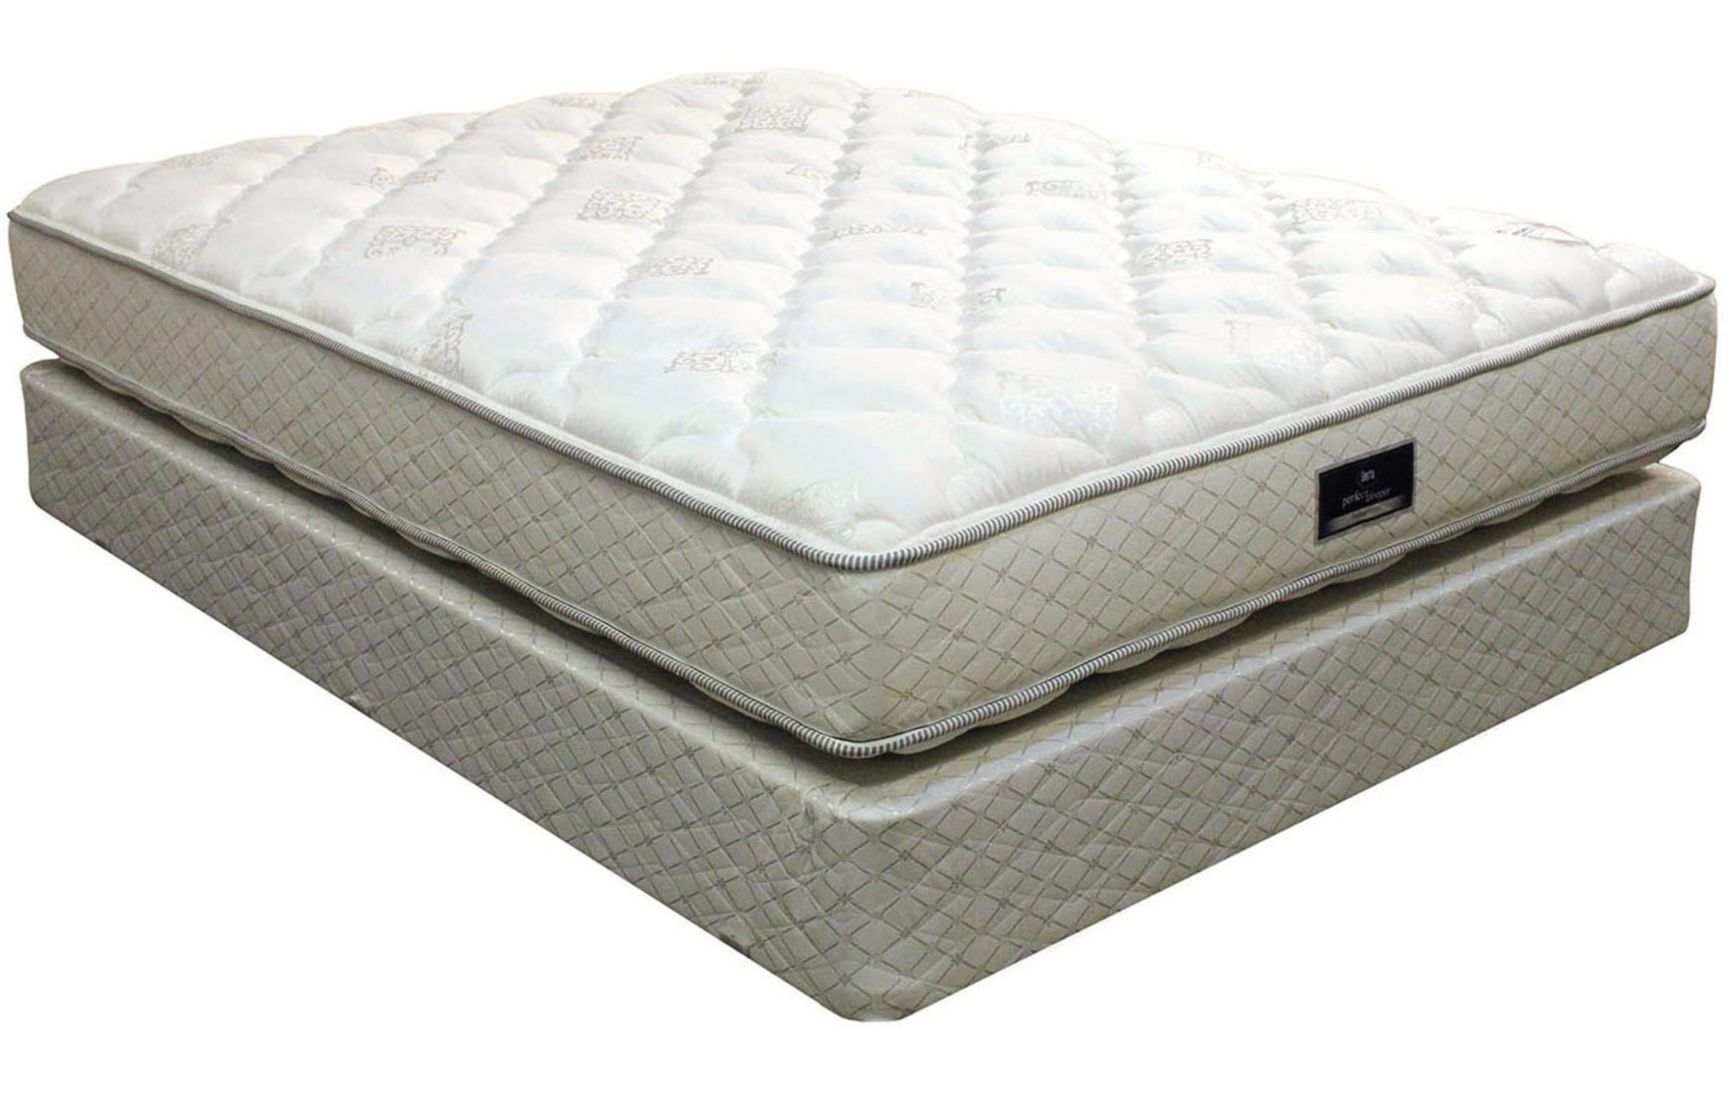 Uncategorized Serta Hotel serta perfect sleeper hotel concierge suite ii plush mattress plush